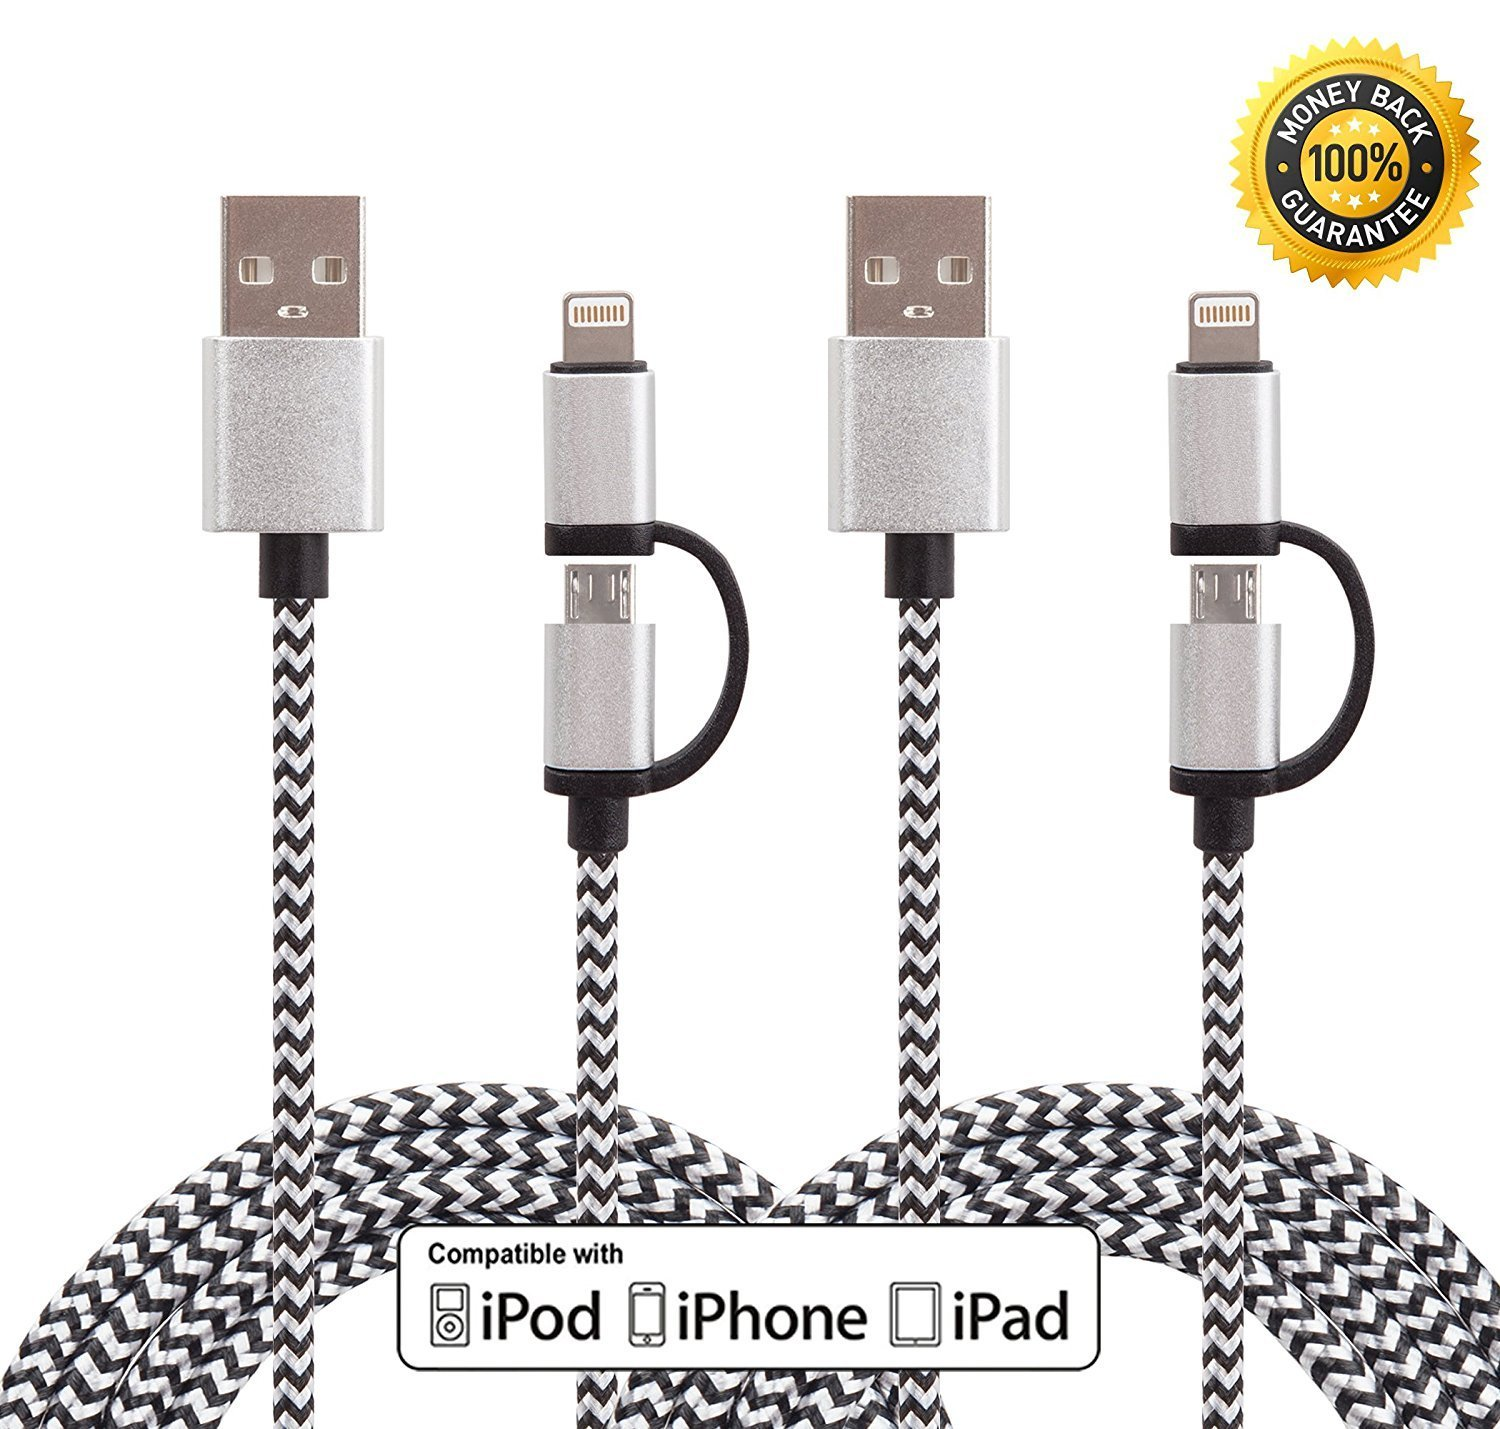 Wecharge(TM) 2 Pack 3FT 2 in 1 Extra Long Nylon Braided 8 pin Lightning& Micro USB Cable Charger for iPhone 6s plus/6s/6 plus/6/5/5s/5c, iPad, iPod, Samsung, HTC, Motorola &Other Smartphones (Black)